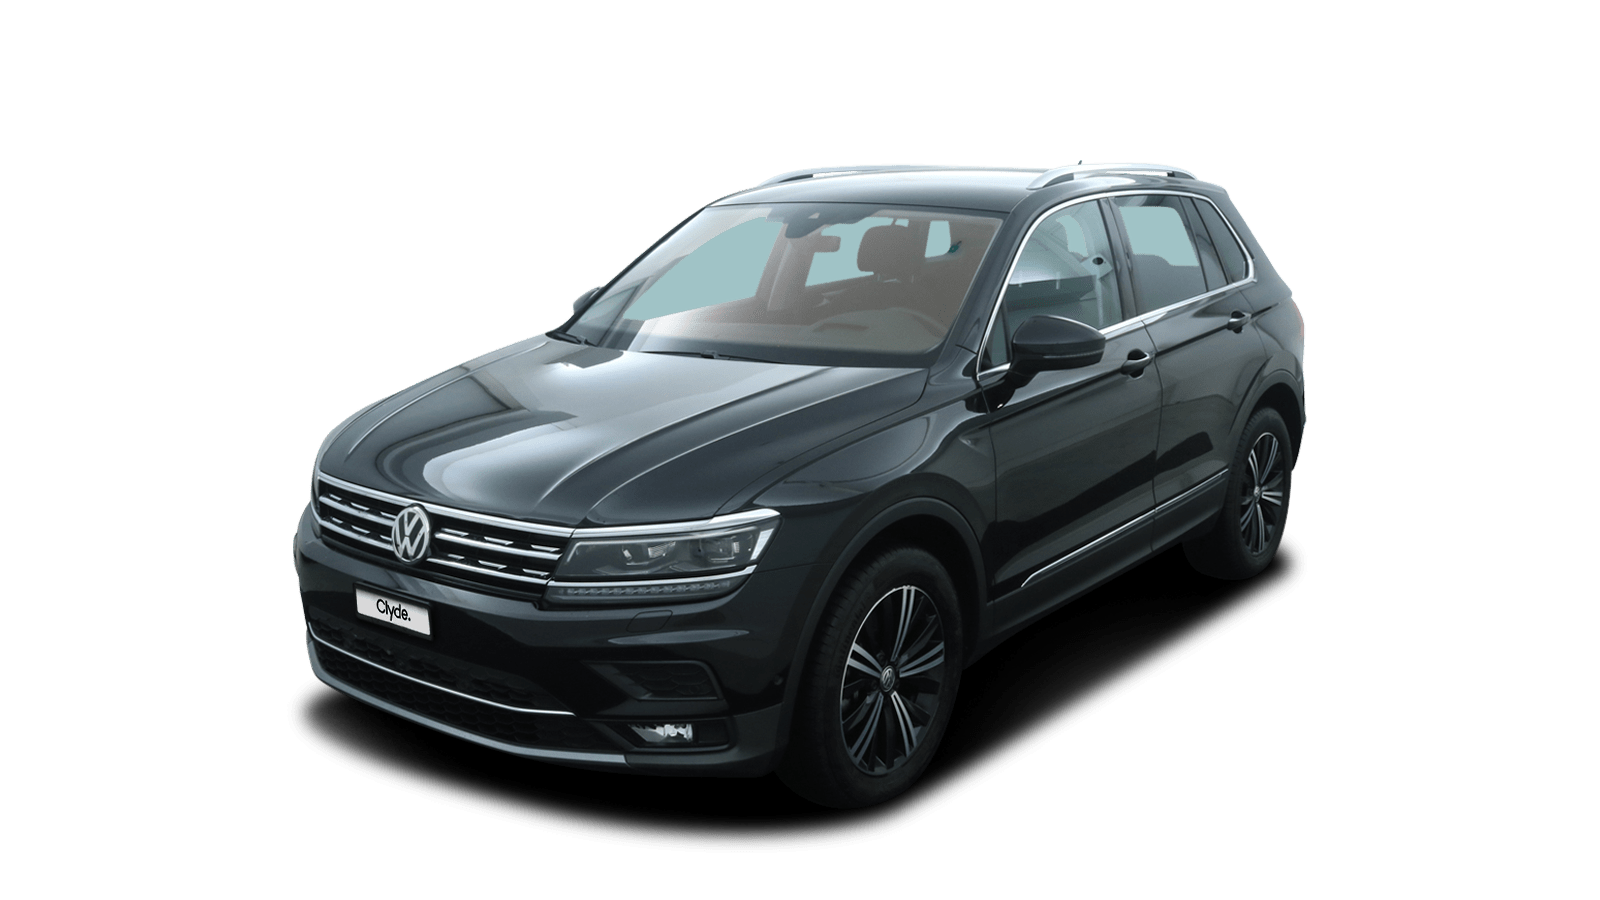 VW Tiguan Black front - Clyde car subscription